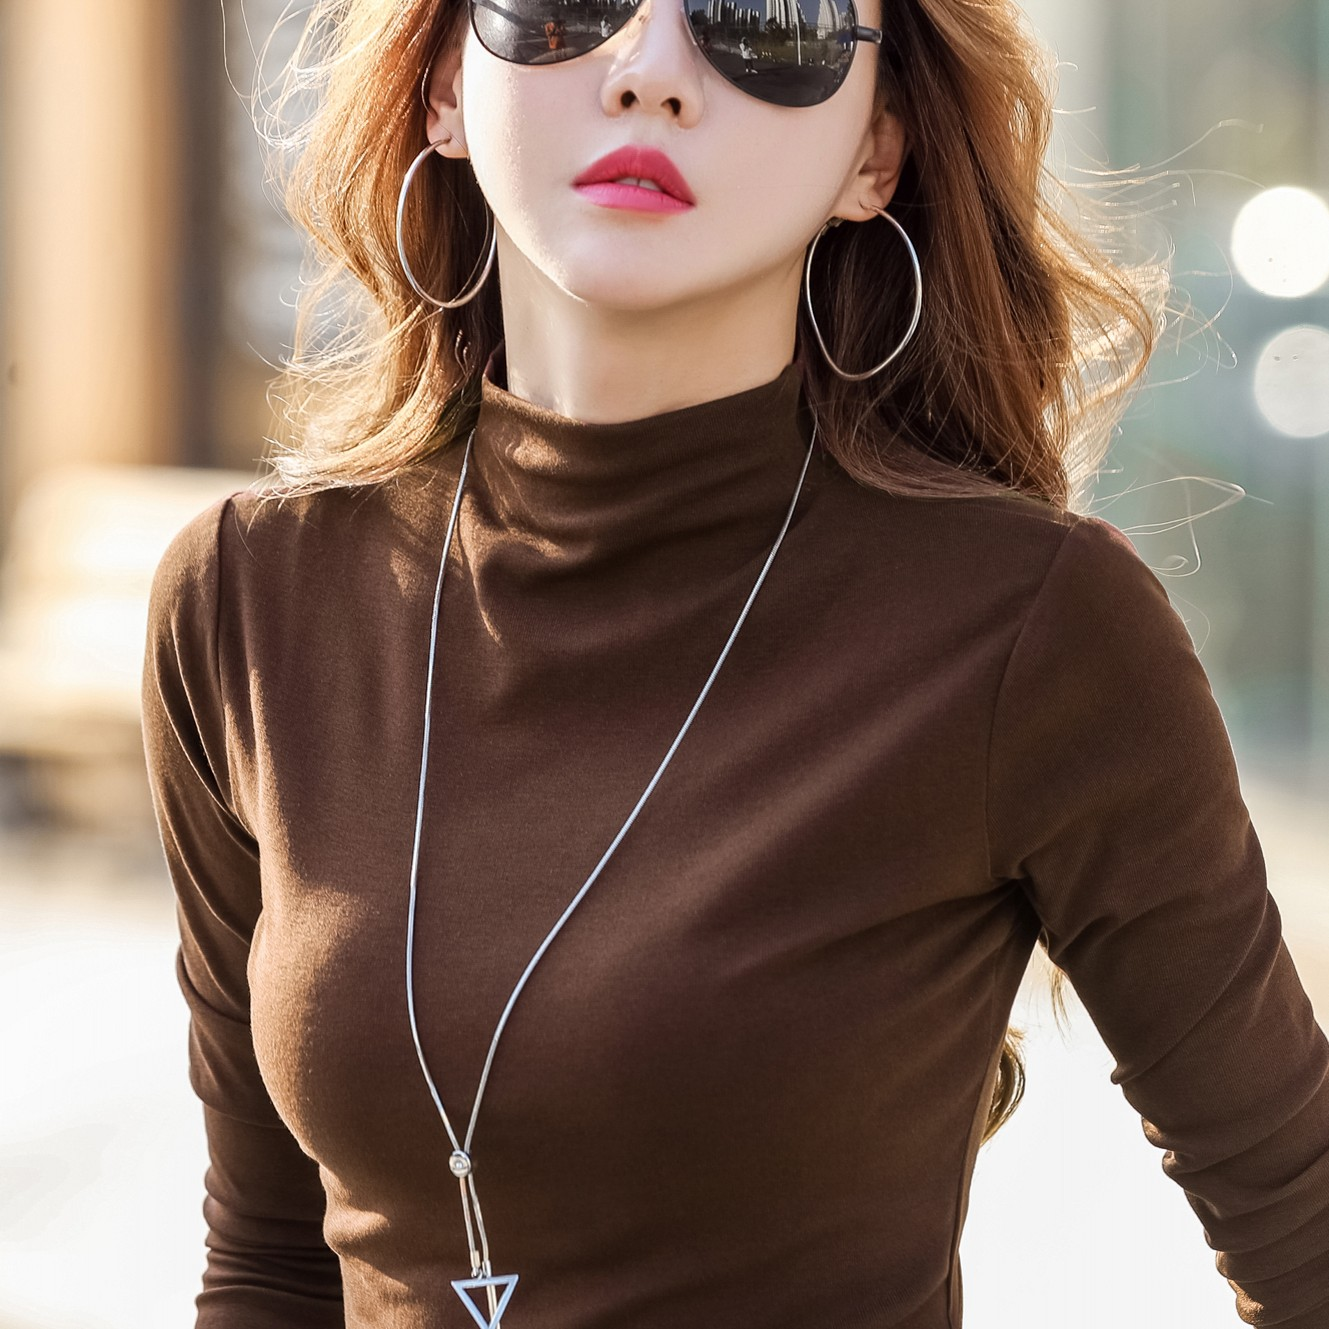 Semi-high-necked bottoms womens long-sleeved T-shirts in spring autumn and winter to tie the autumn coat in the collared black hundred-tie top